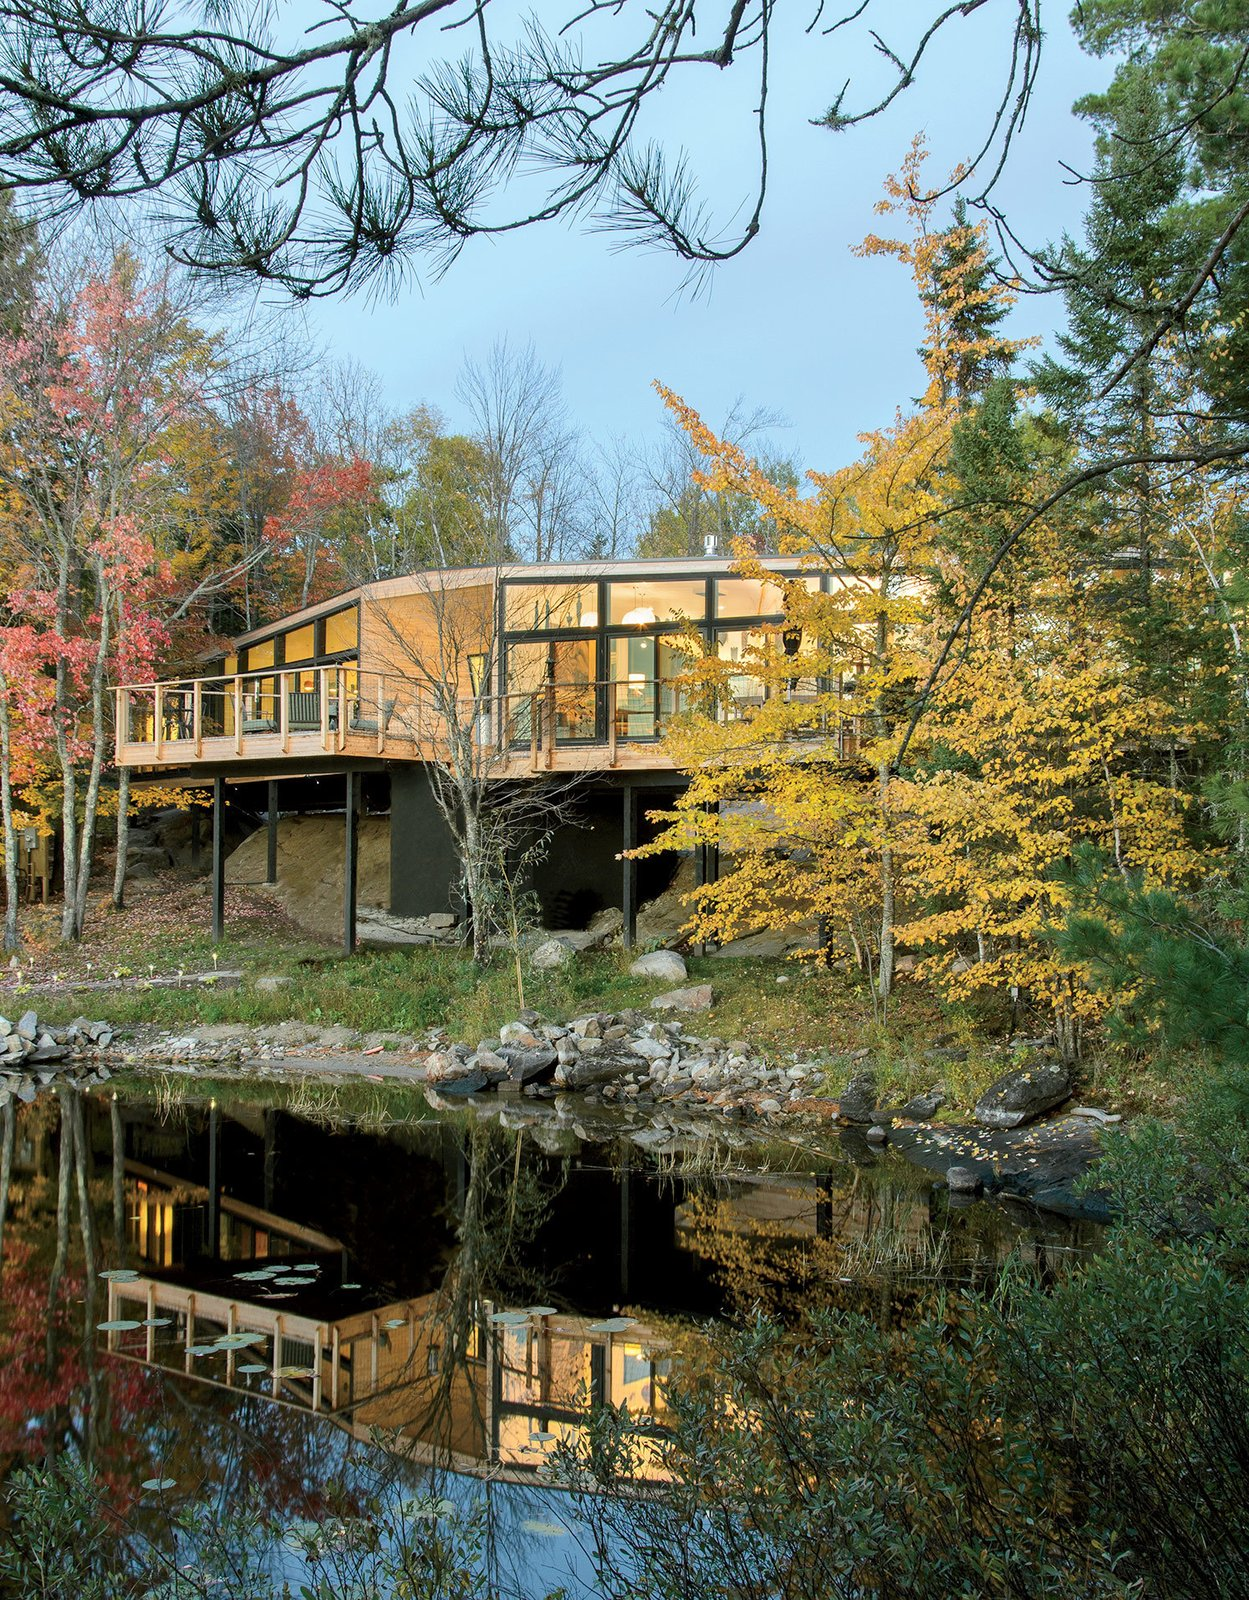 Retirees Dr. Mary Ellen Kennedy and Robert Dault tasked architect Charlie Lazor with bringing a prefabricated 2,100-square-foot home to their lakeside property, located in one of rural Ontario's unorganized territories.  Prefab from This Isolated Prefab Is One with the Wild